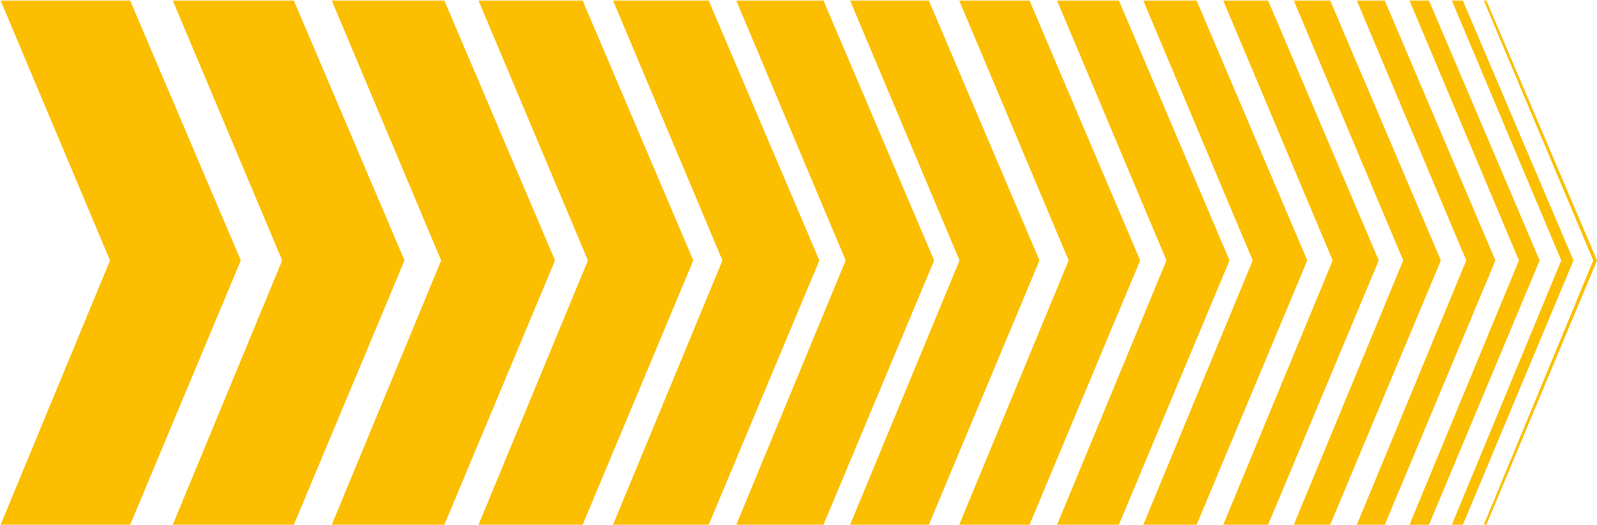 Highway clipart yellow line, Highway yellow line Transparent.